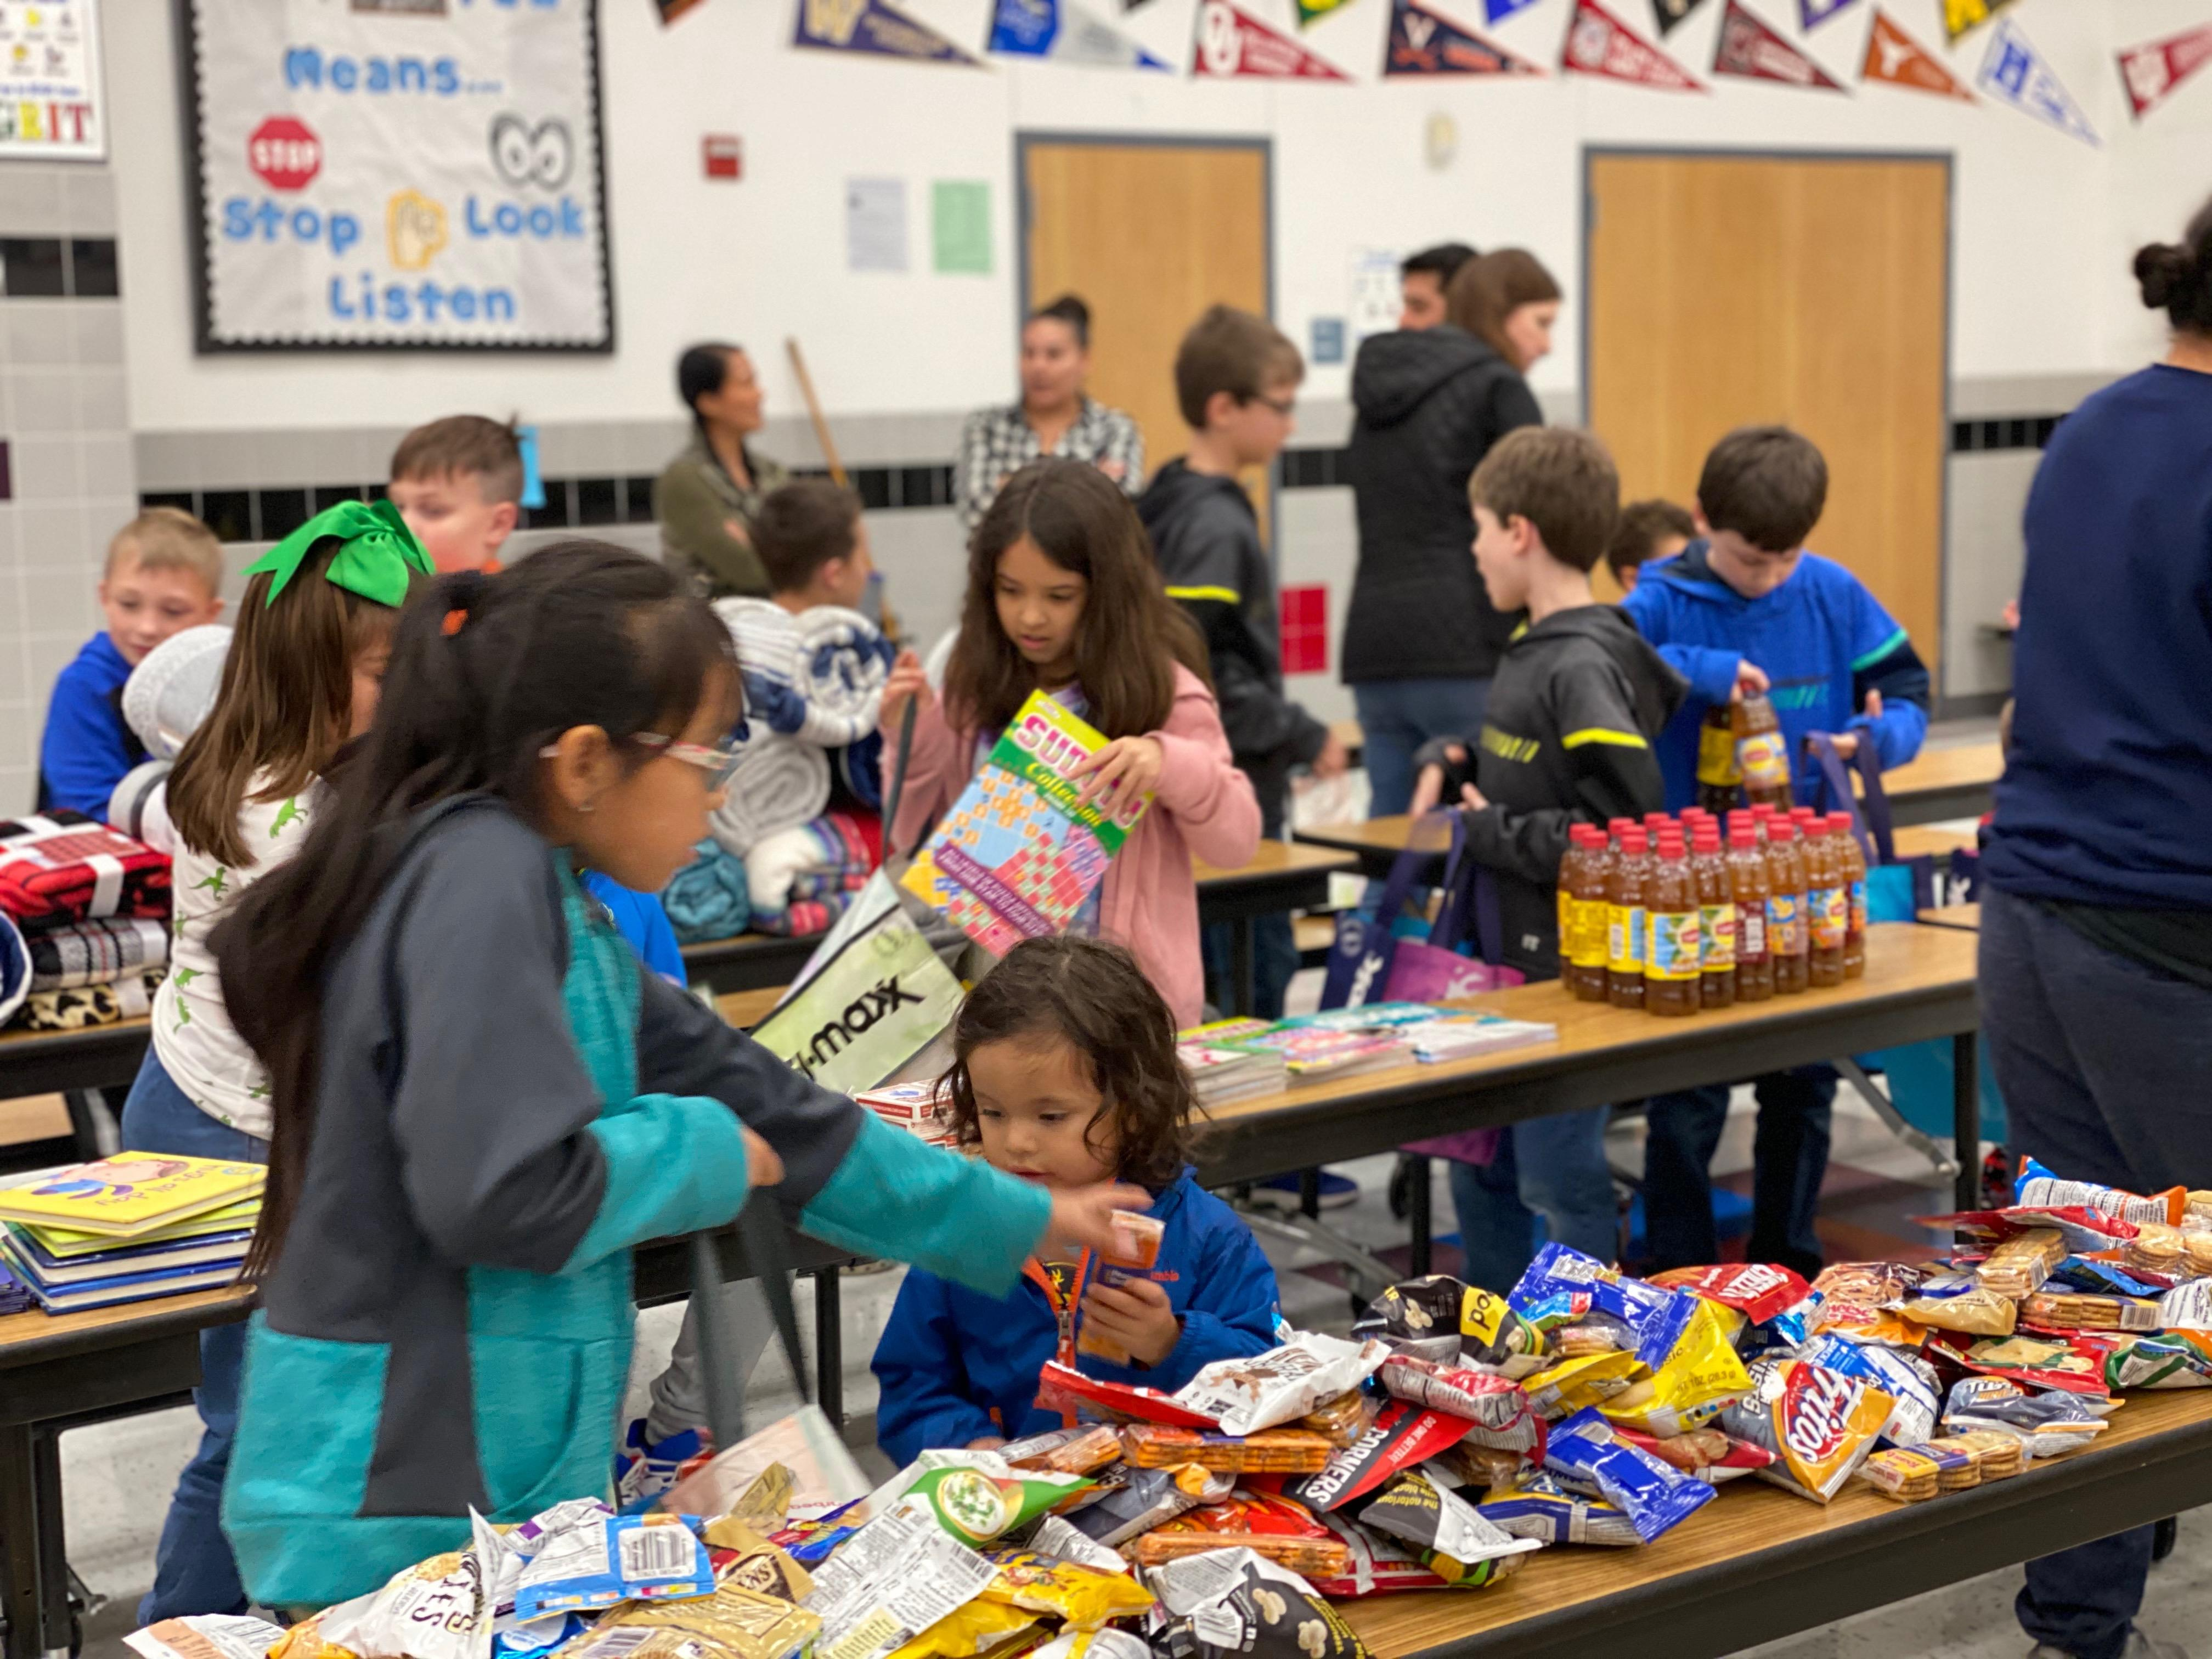 A group of third graders at the North Elementary STEAM Academy recently challenged the community to donate items and make care packages for the parents of NICU babies at Baylor Scott and White Hospital in Fort Worth.